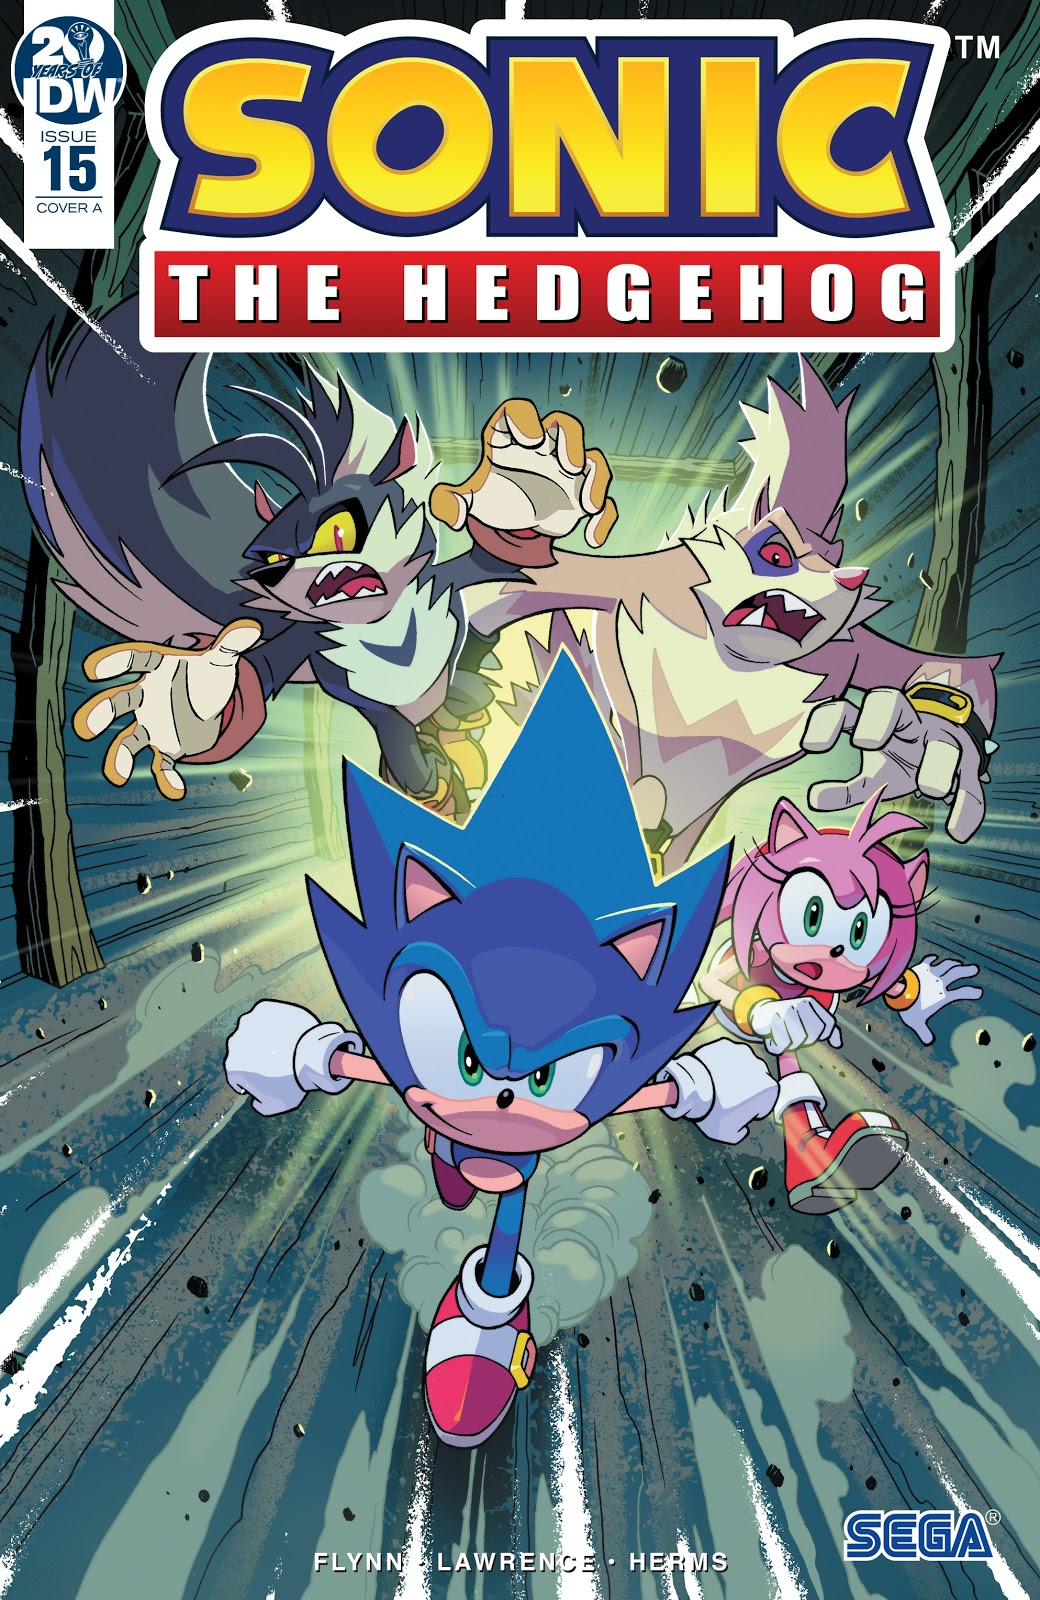 Hedgehogs Can T Swim Sonic The Hedgehog Idw Issue 15